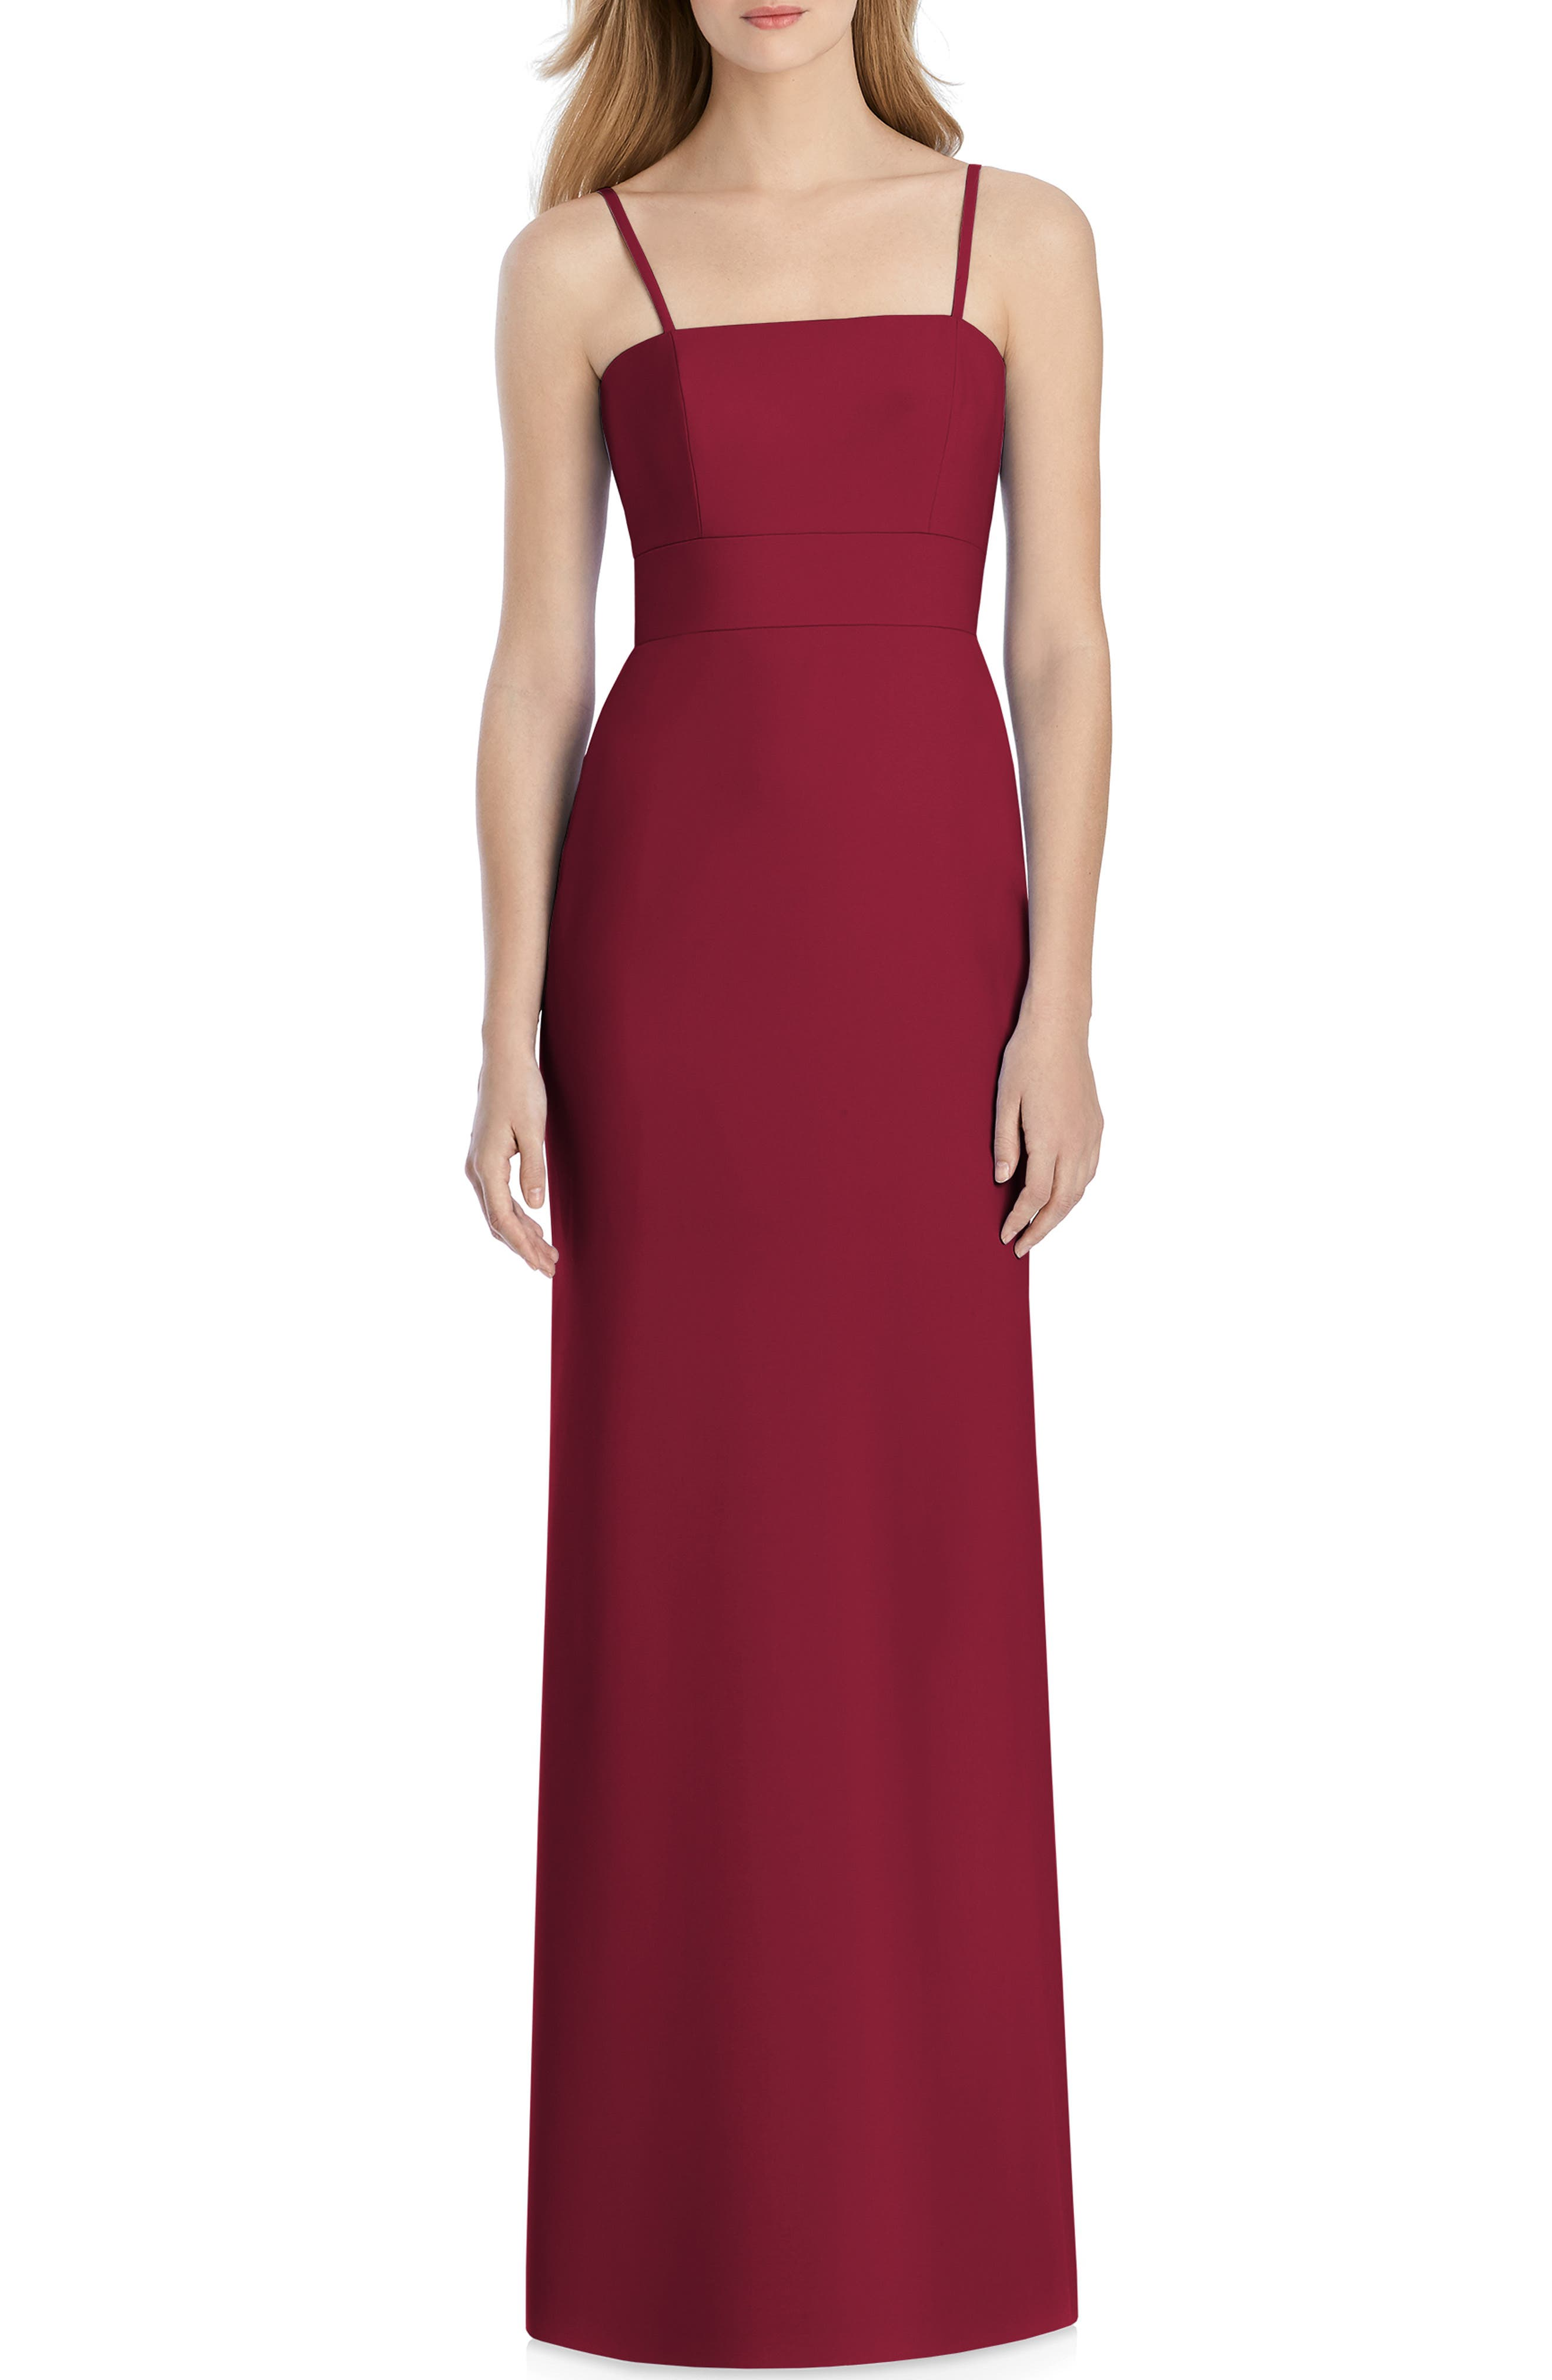 Lela Rose Bridesmaid Bow Back Crepe Gown, Red